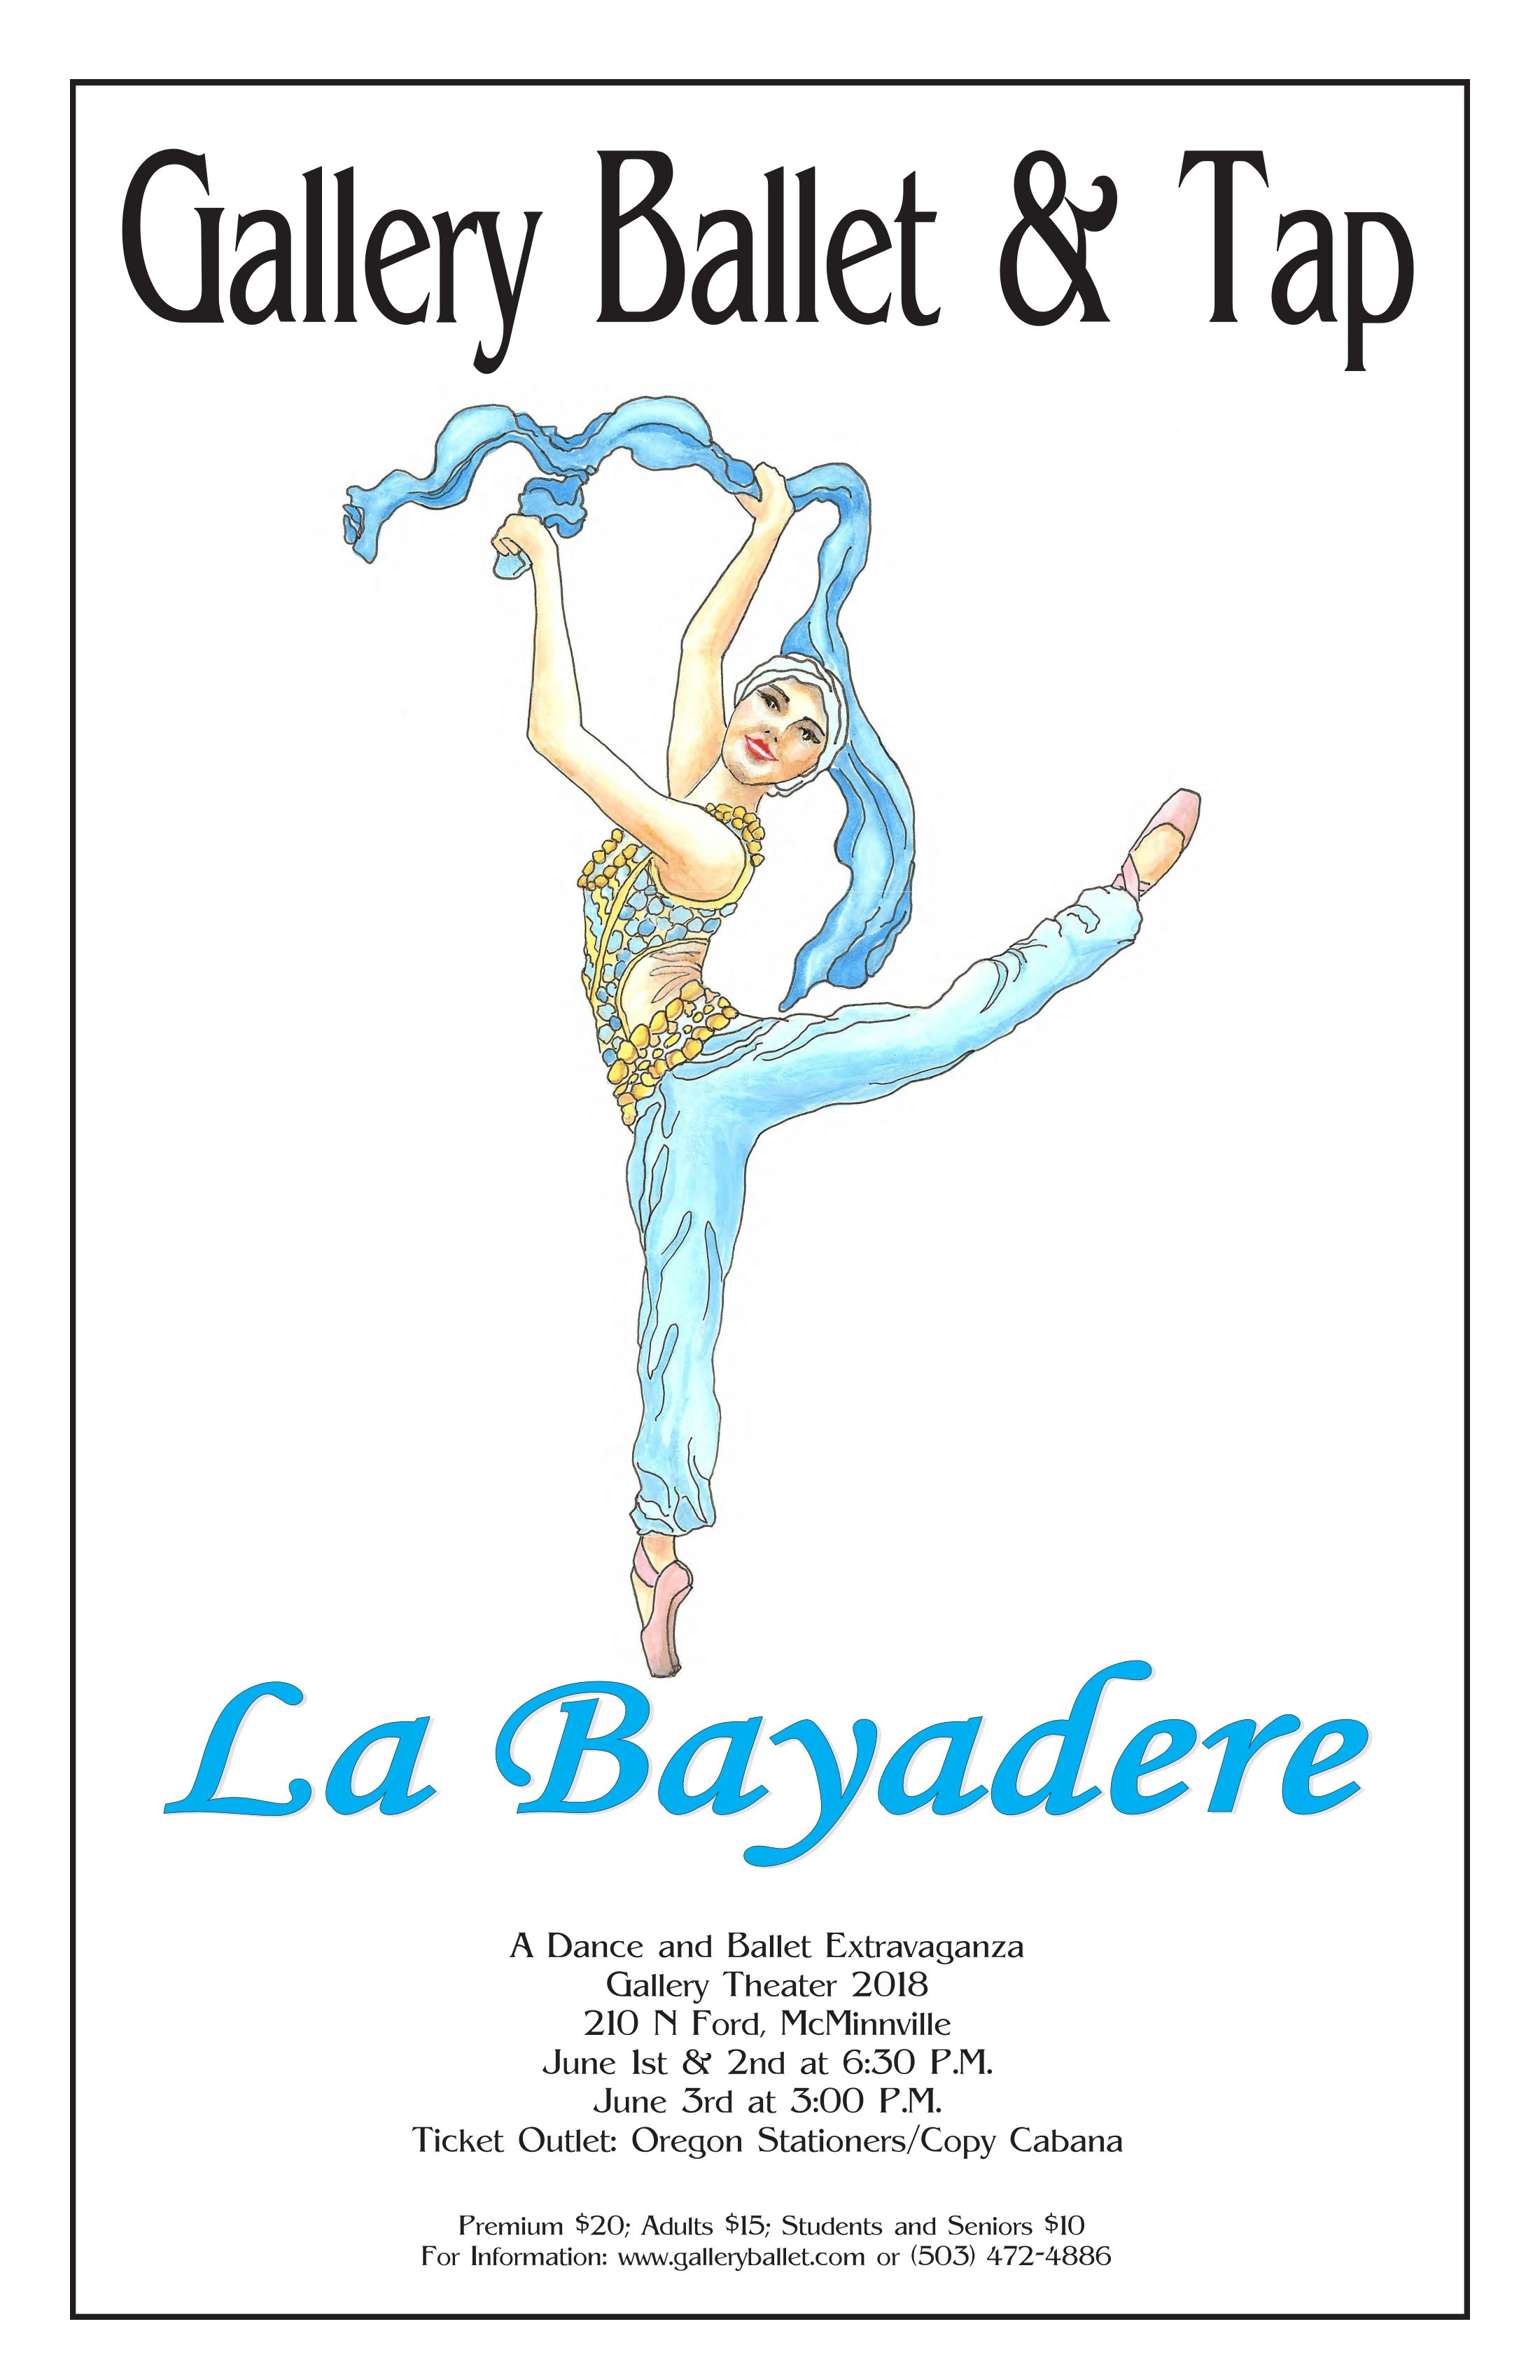 Our Spring Performance of La Bayadere